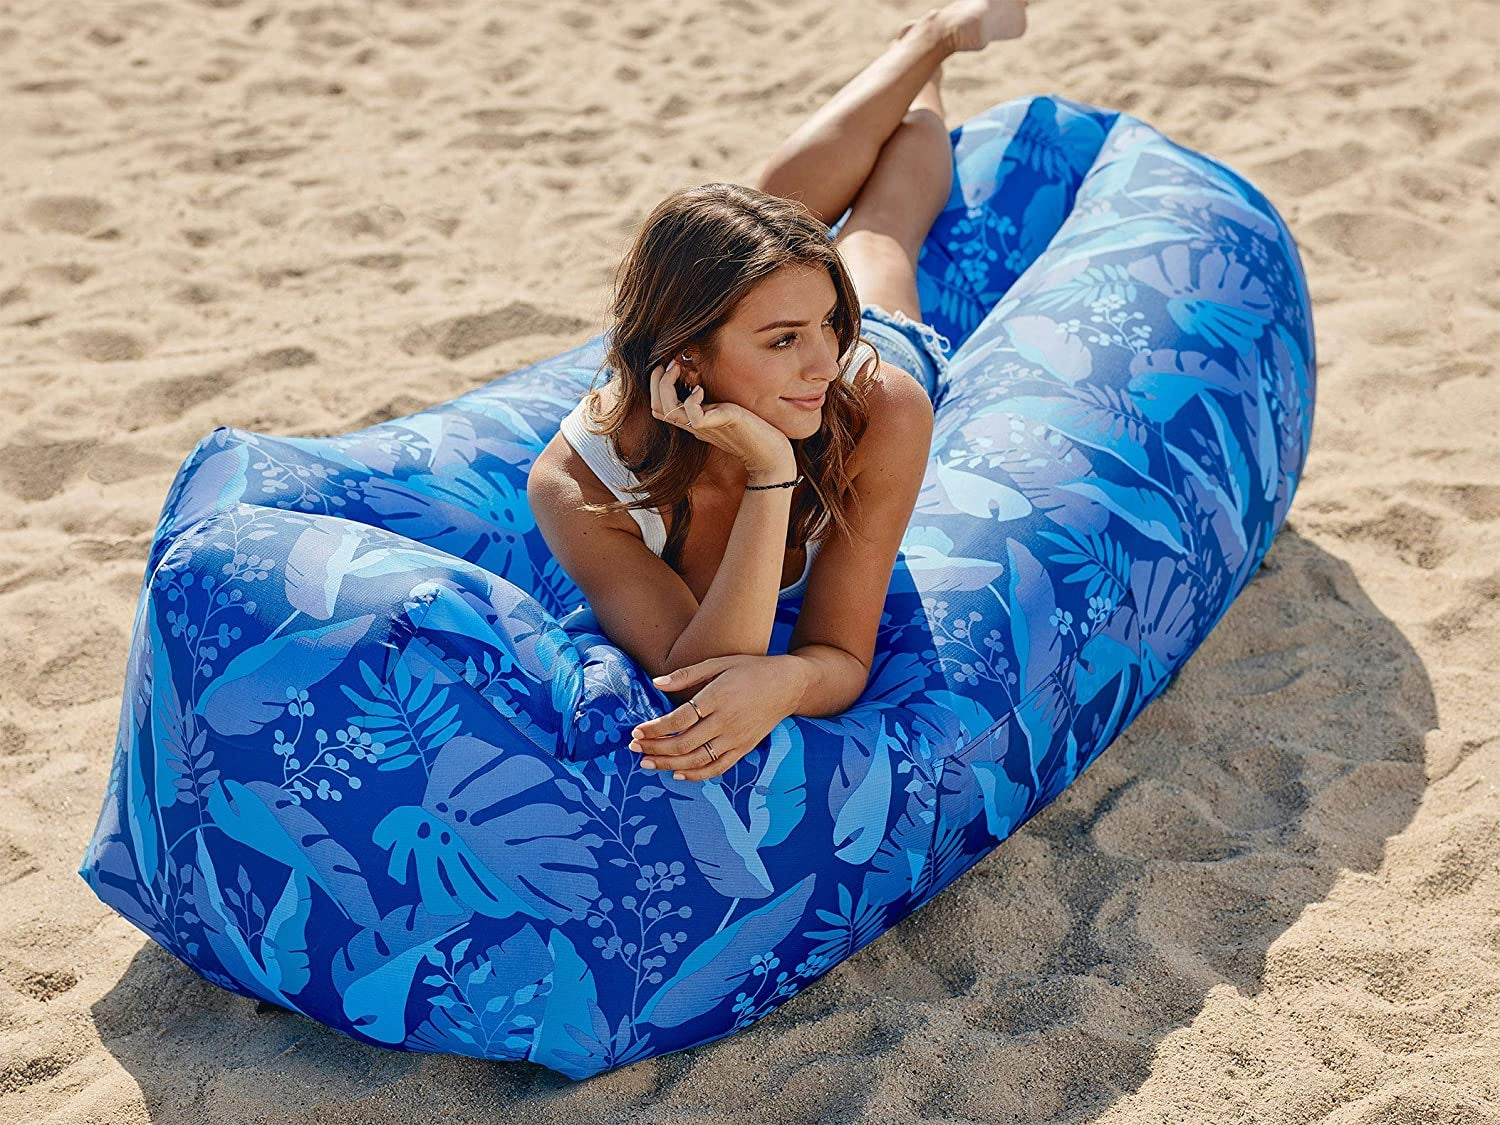 model on an inflated long lounger